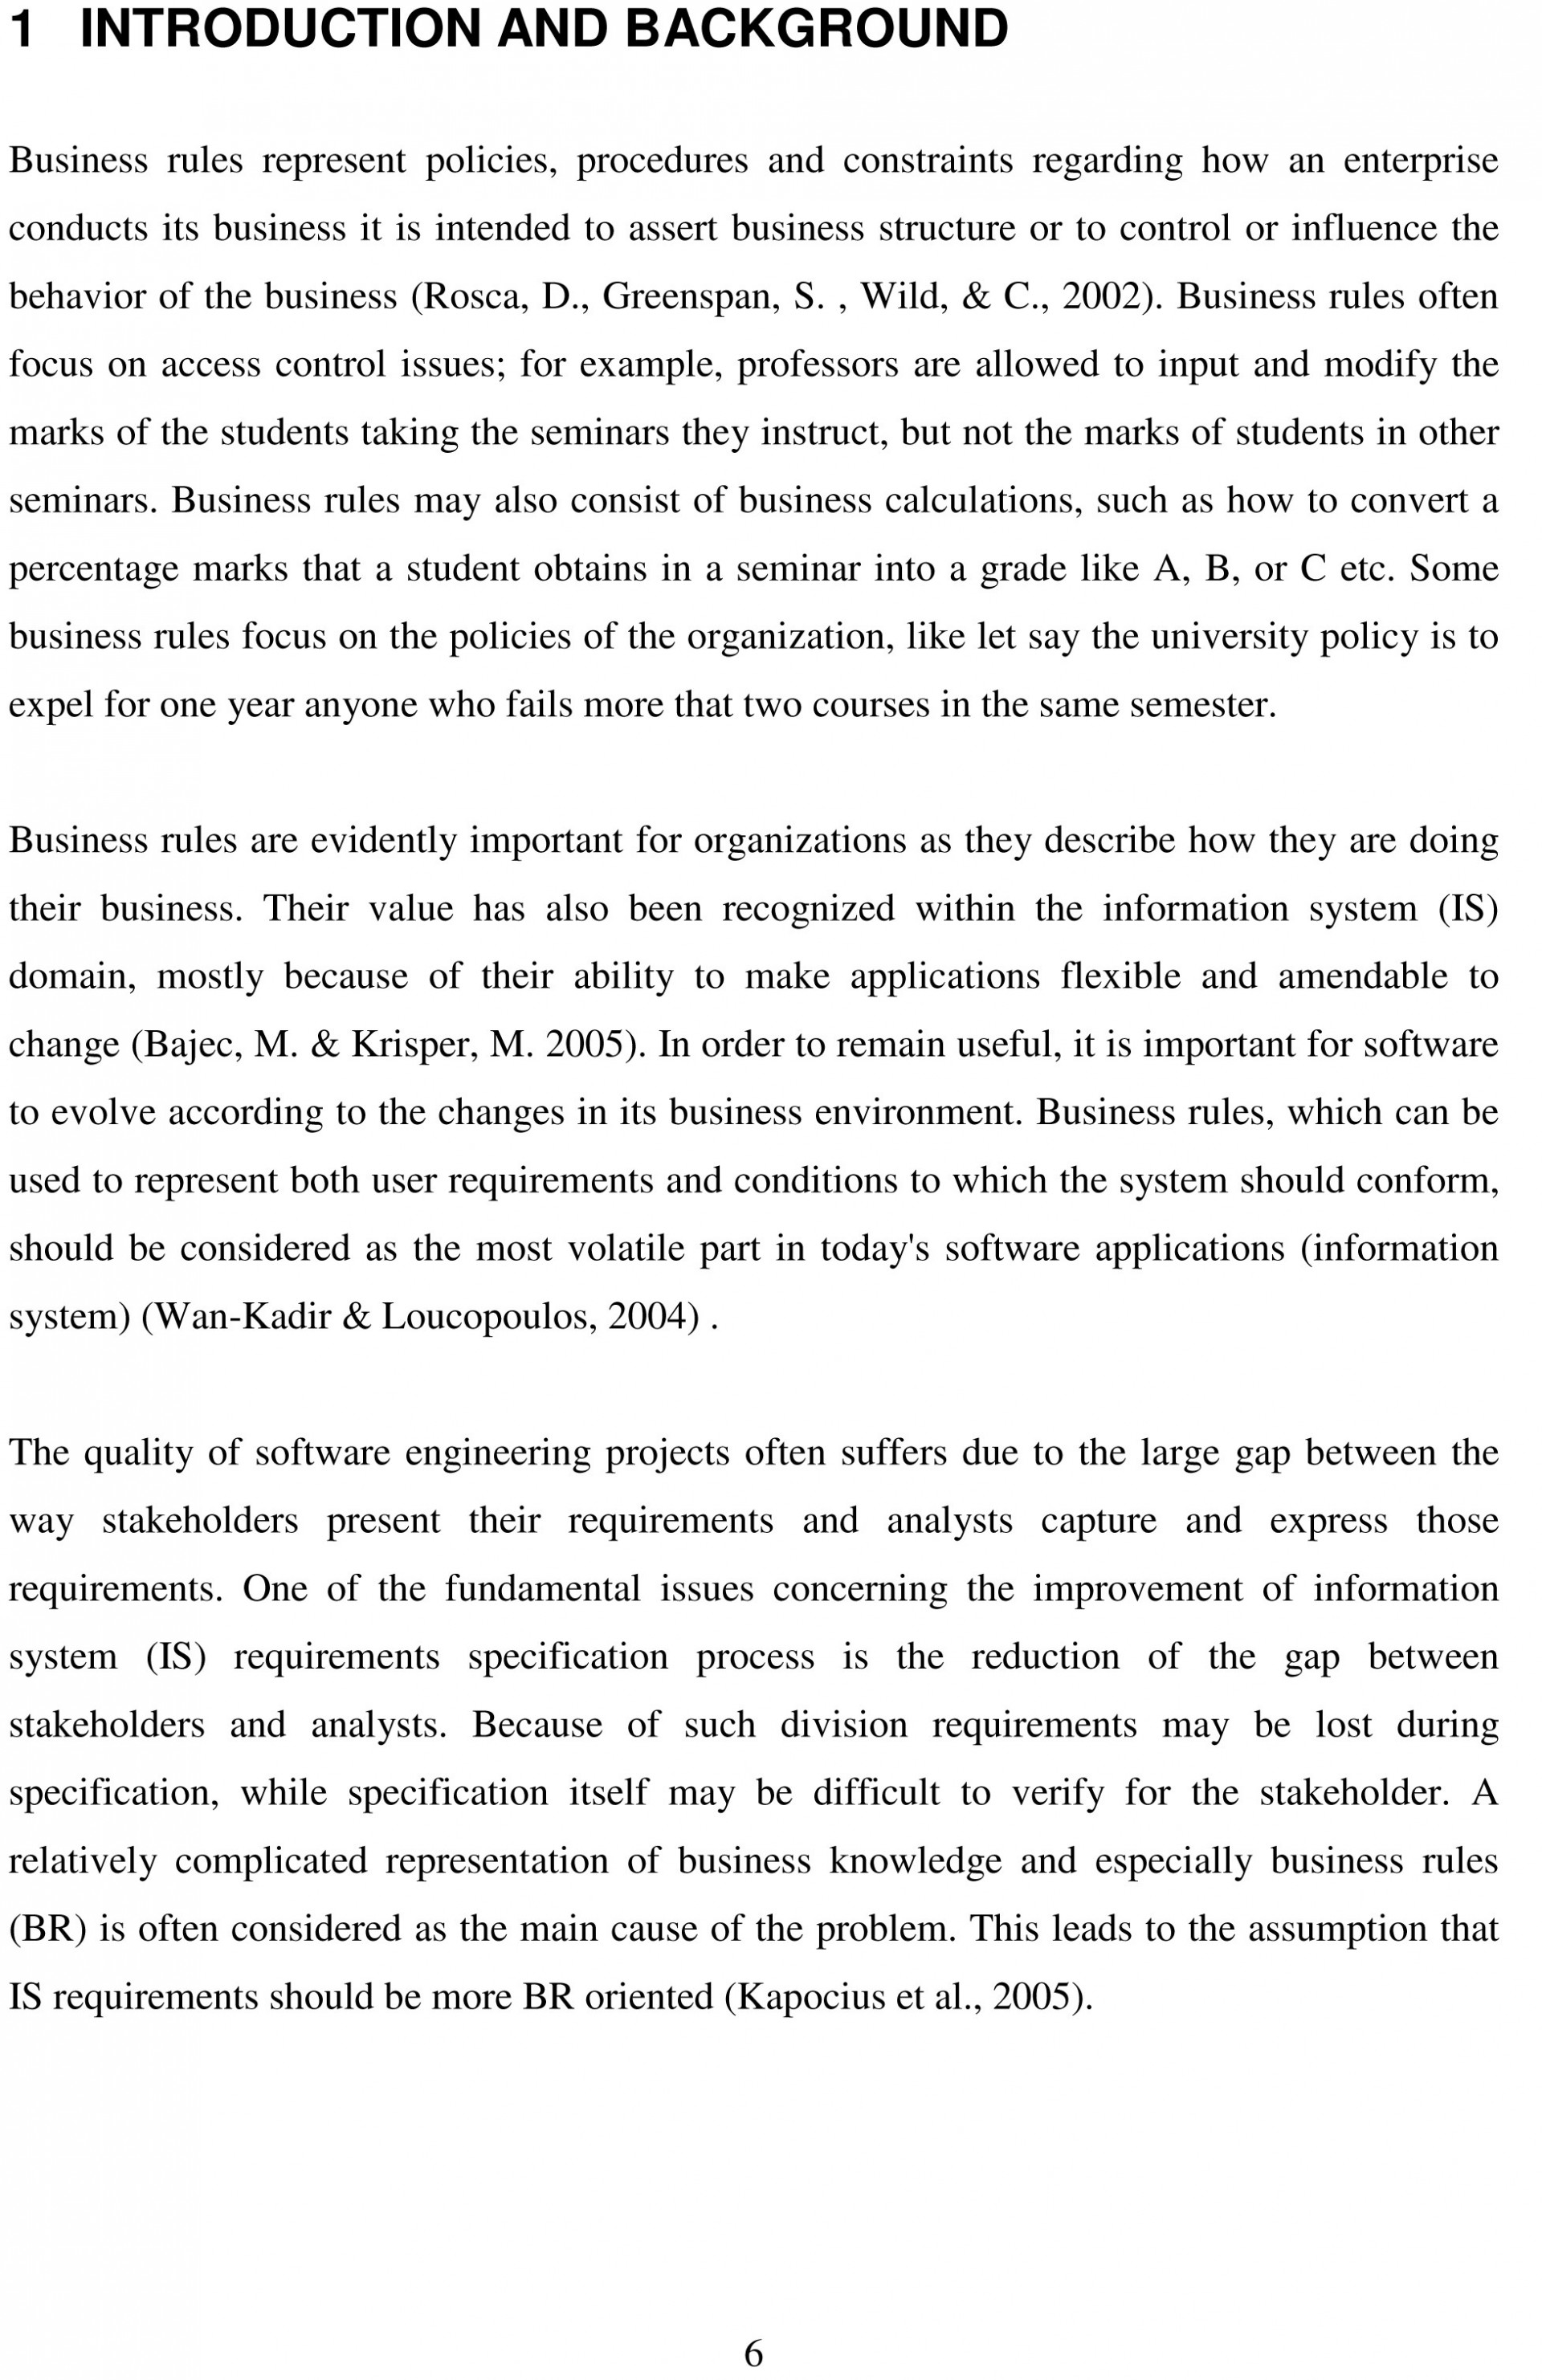 015 Research Paper Quality Thesis Free Sample Argumentative Topics On Singular Literature 1920